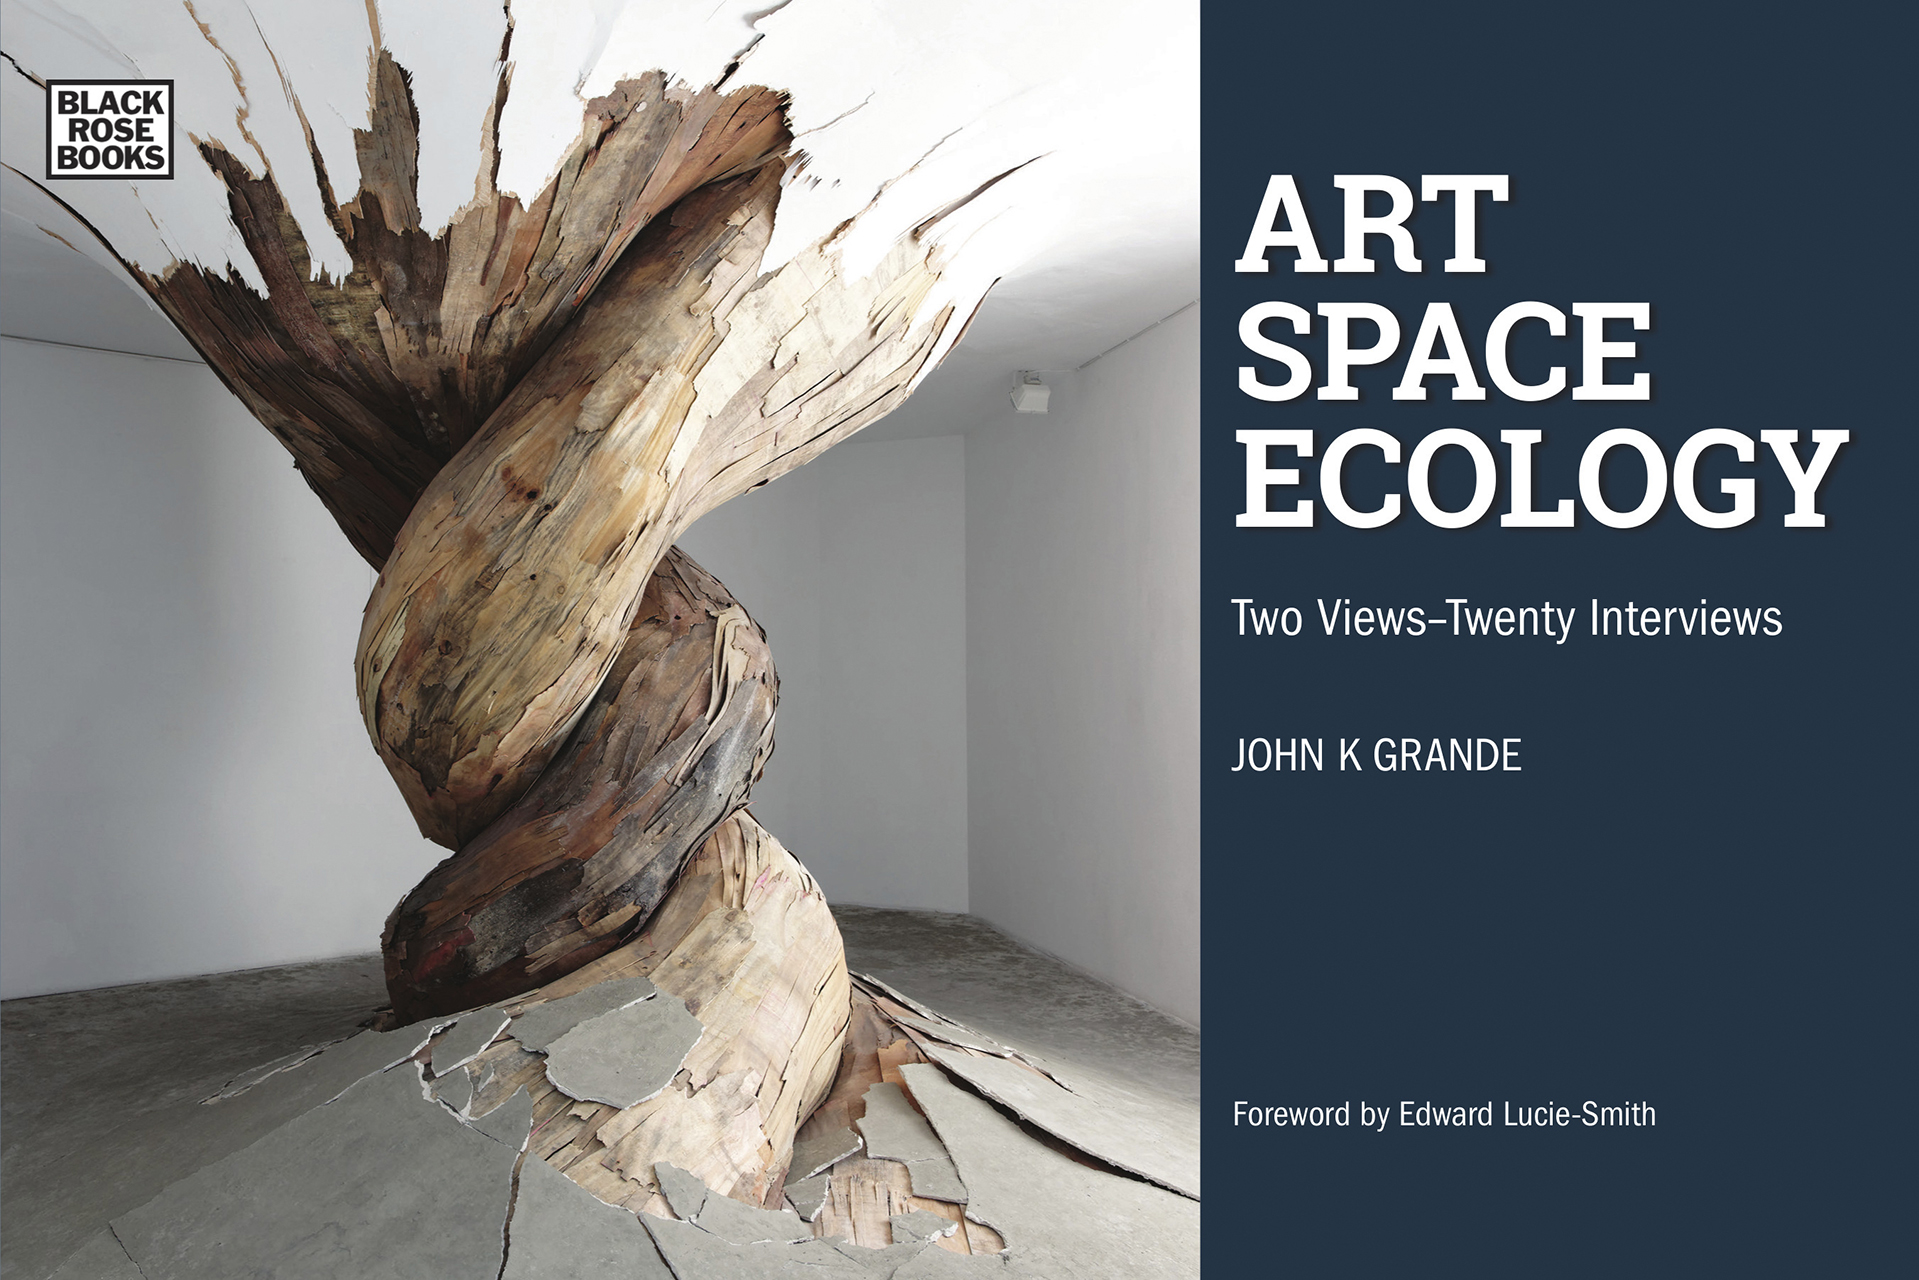 Art, Space, Ecology: Two Views-Twenty Interviews